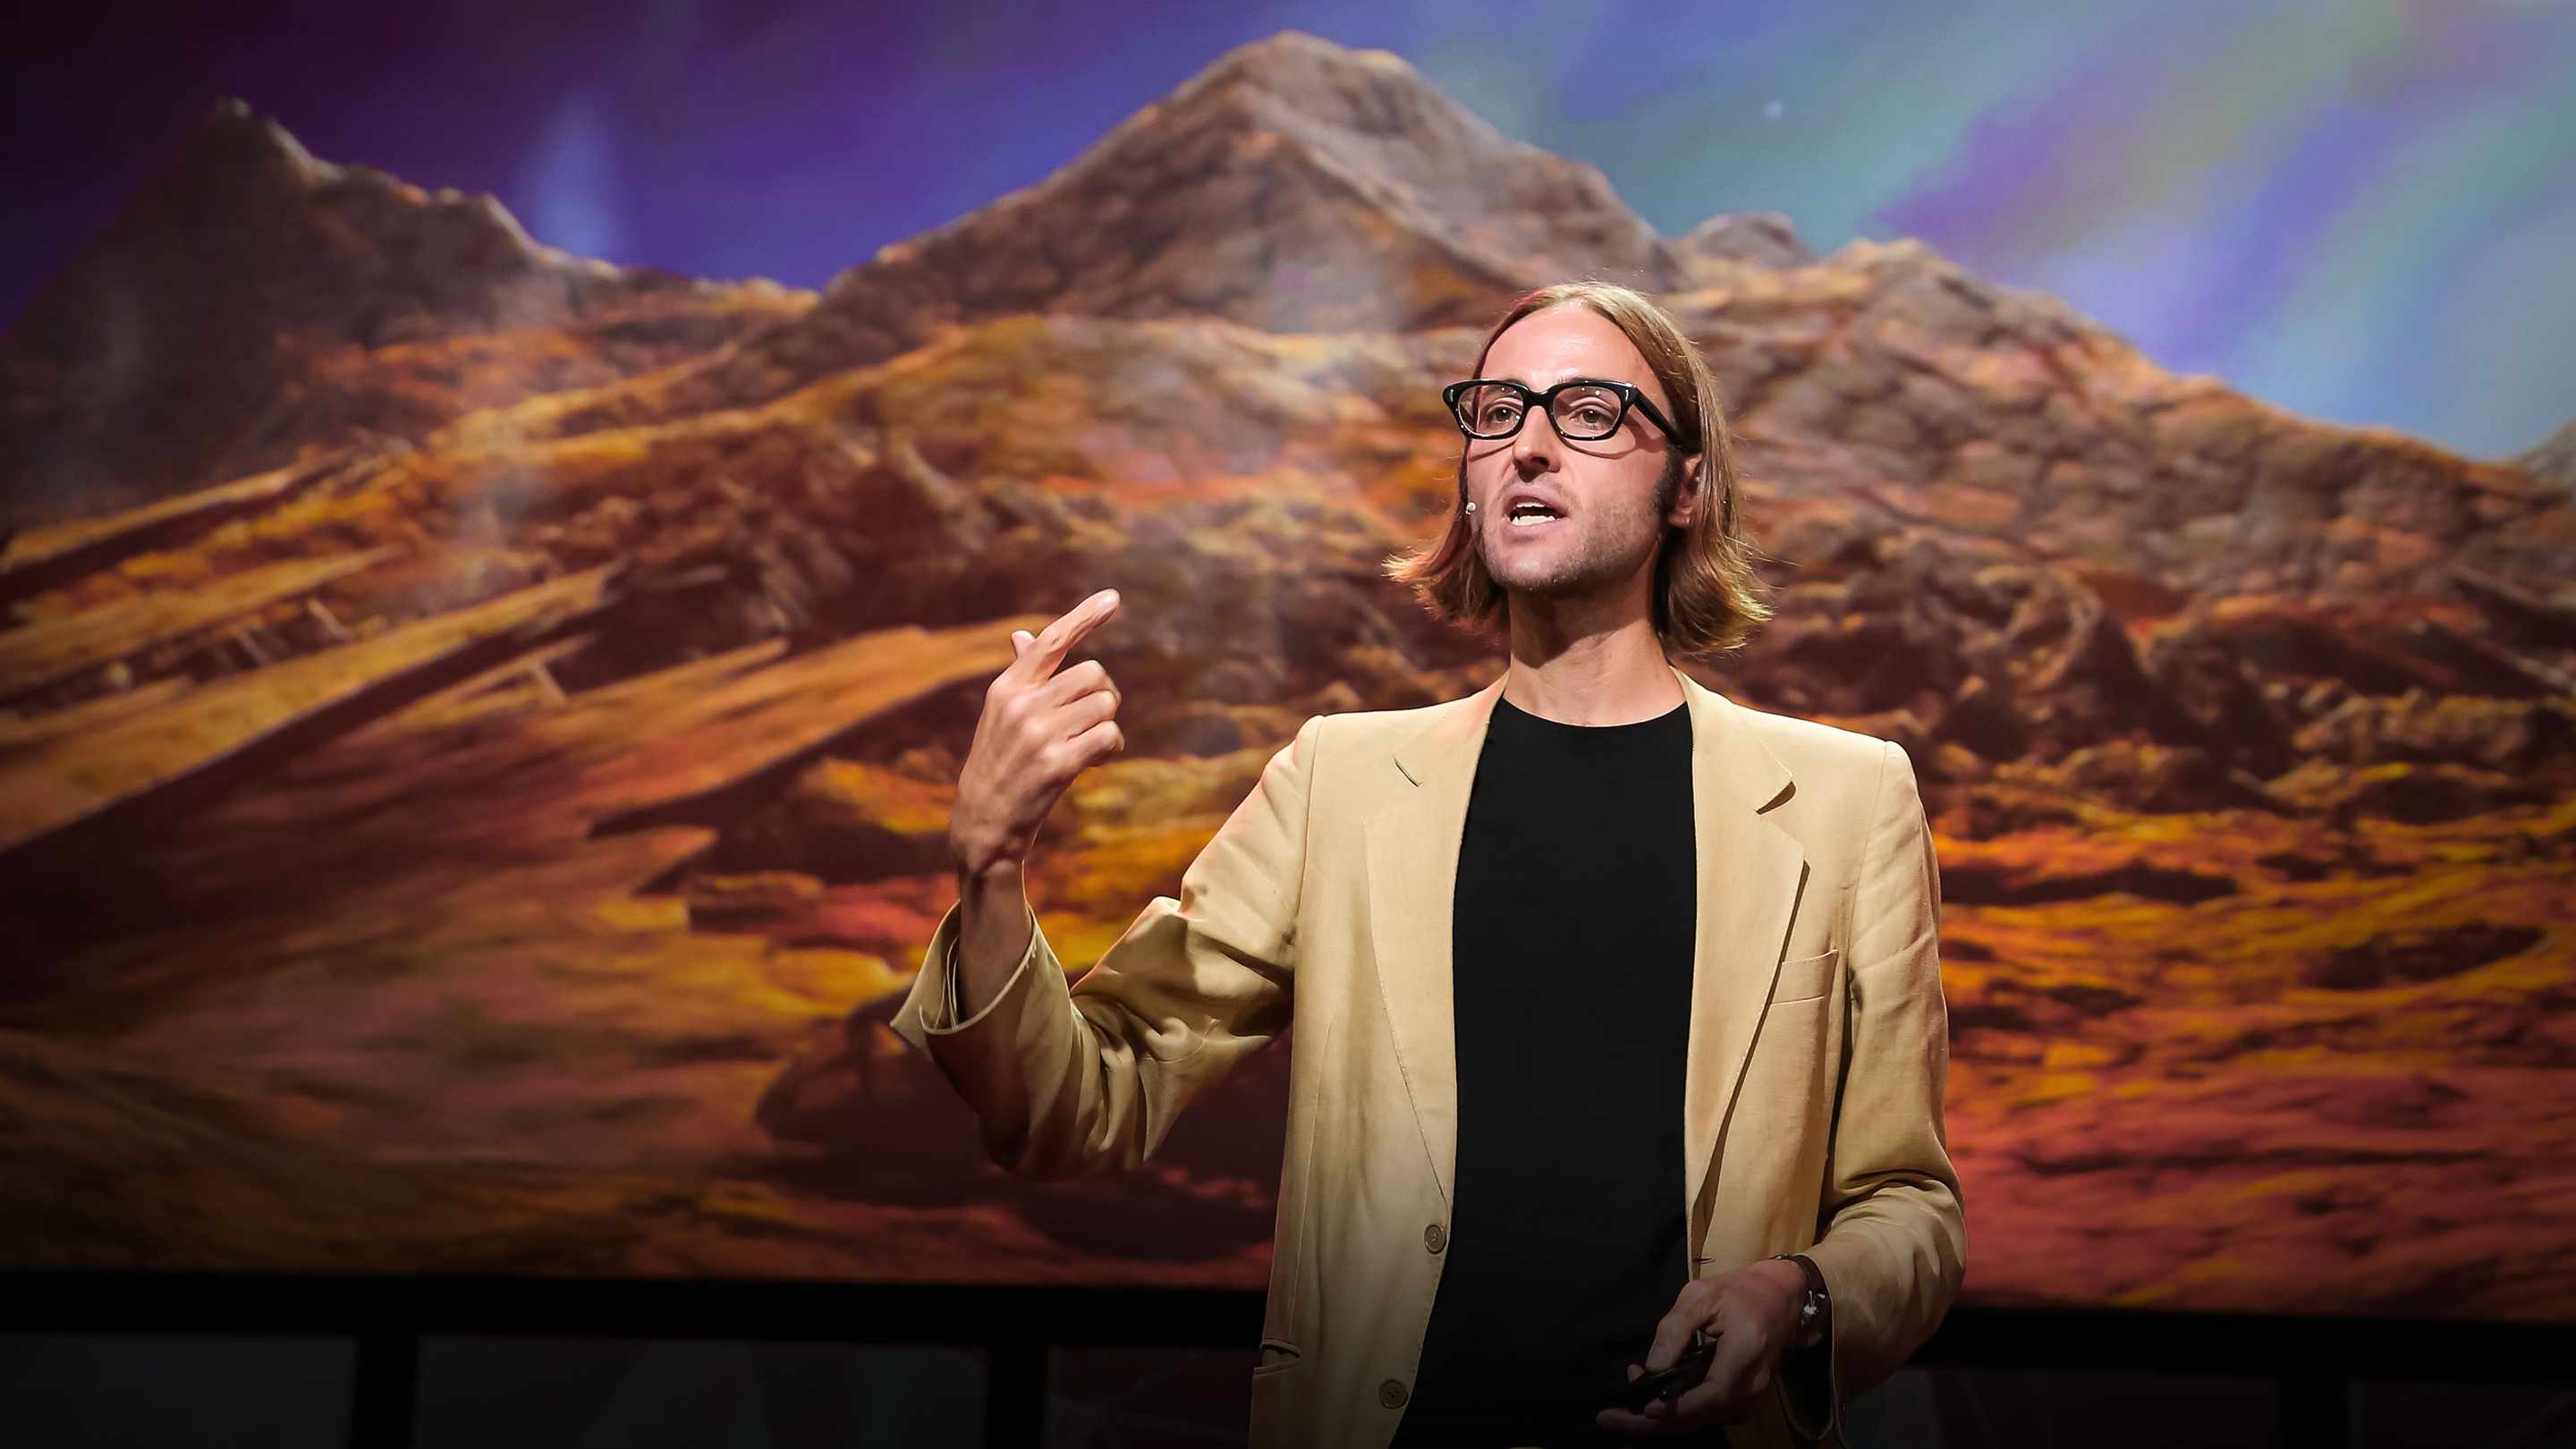 Harry Cliff: Have we reached the end of physics? | TED Talk